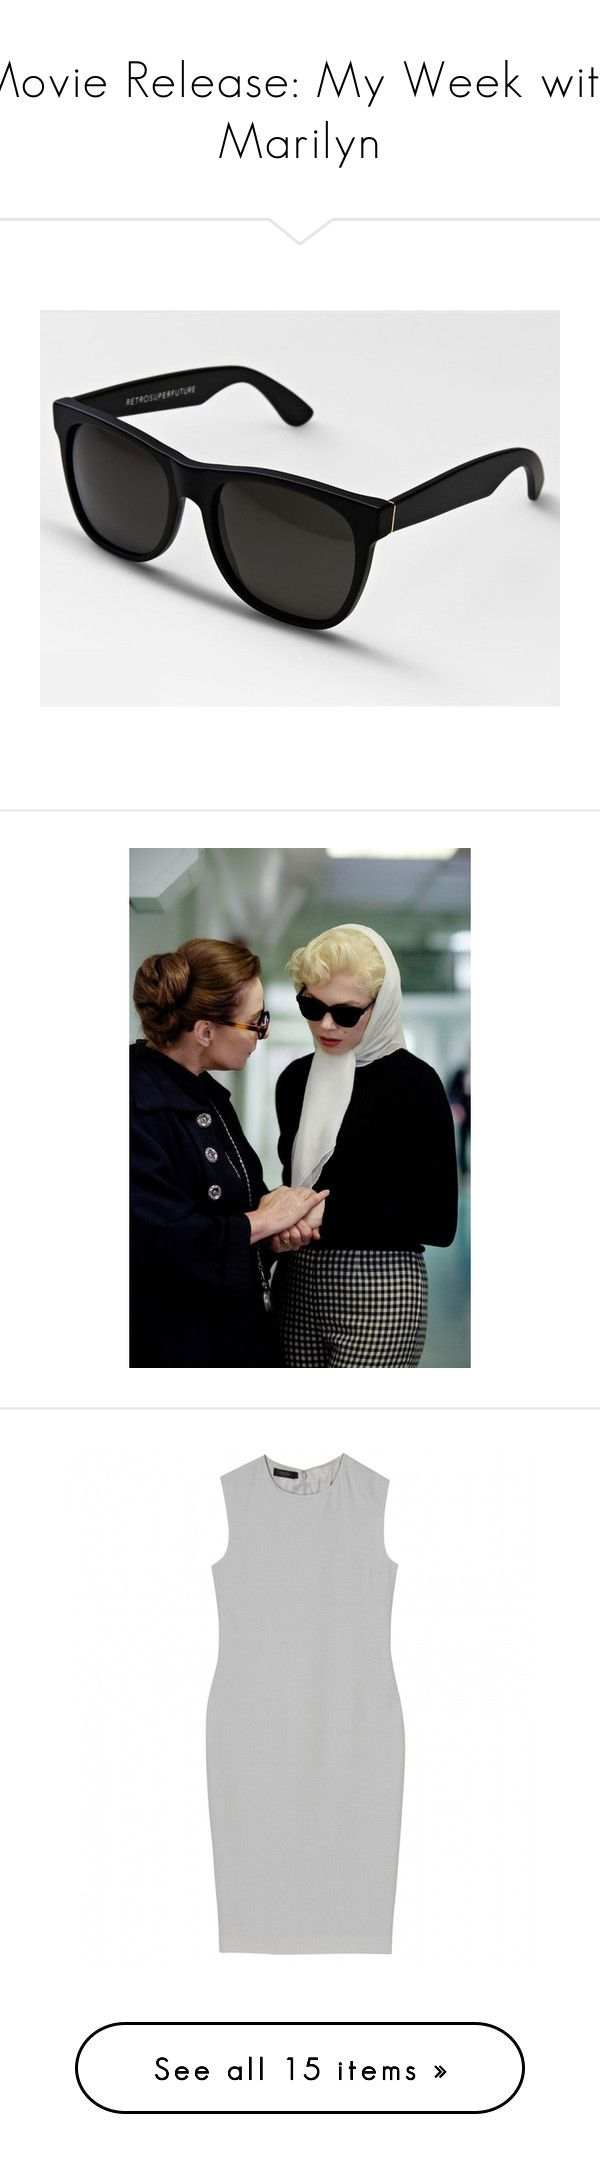 """""""Movie Release: My Week with Marilyn"""" by polyvore-editorial ❤ liked on Polyvore featuring Theyskens' Theory, Calvin Klein Collection, Patricia Nash, MaxMara, RetroSuperFuture, movie release, my week with marilyn, michelle williams, men's fashion and men's accessories"""